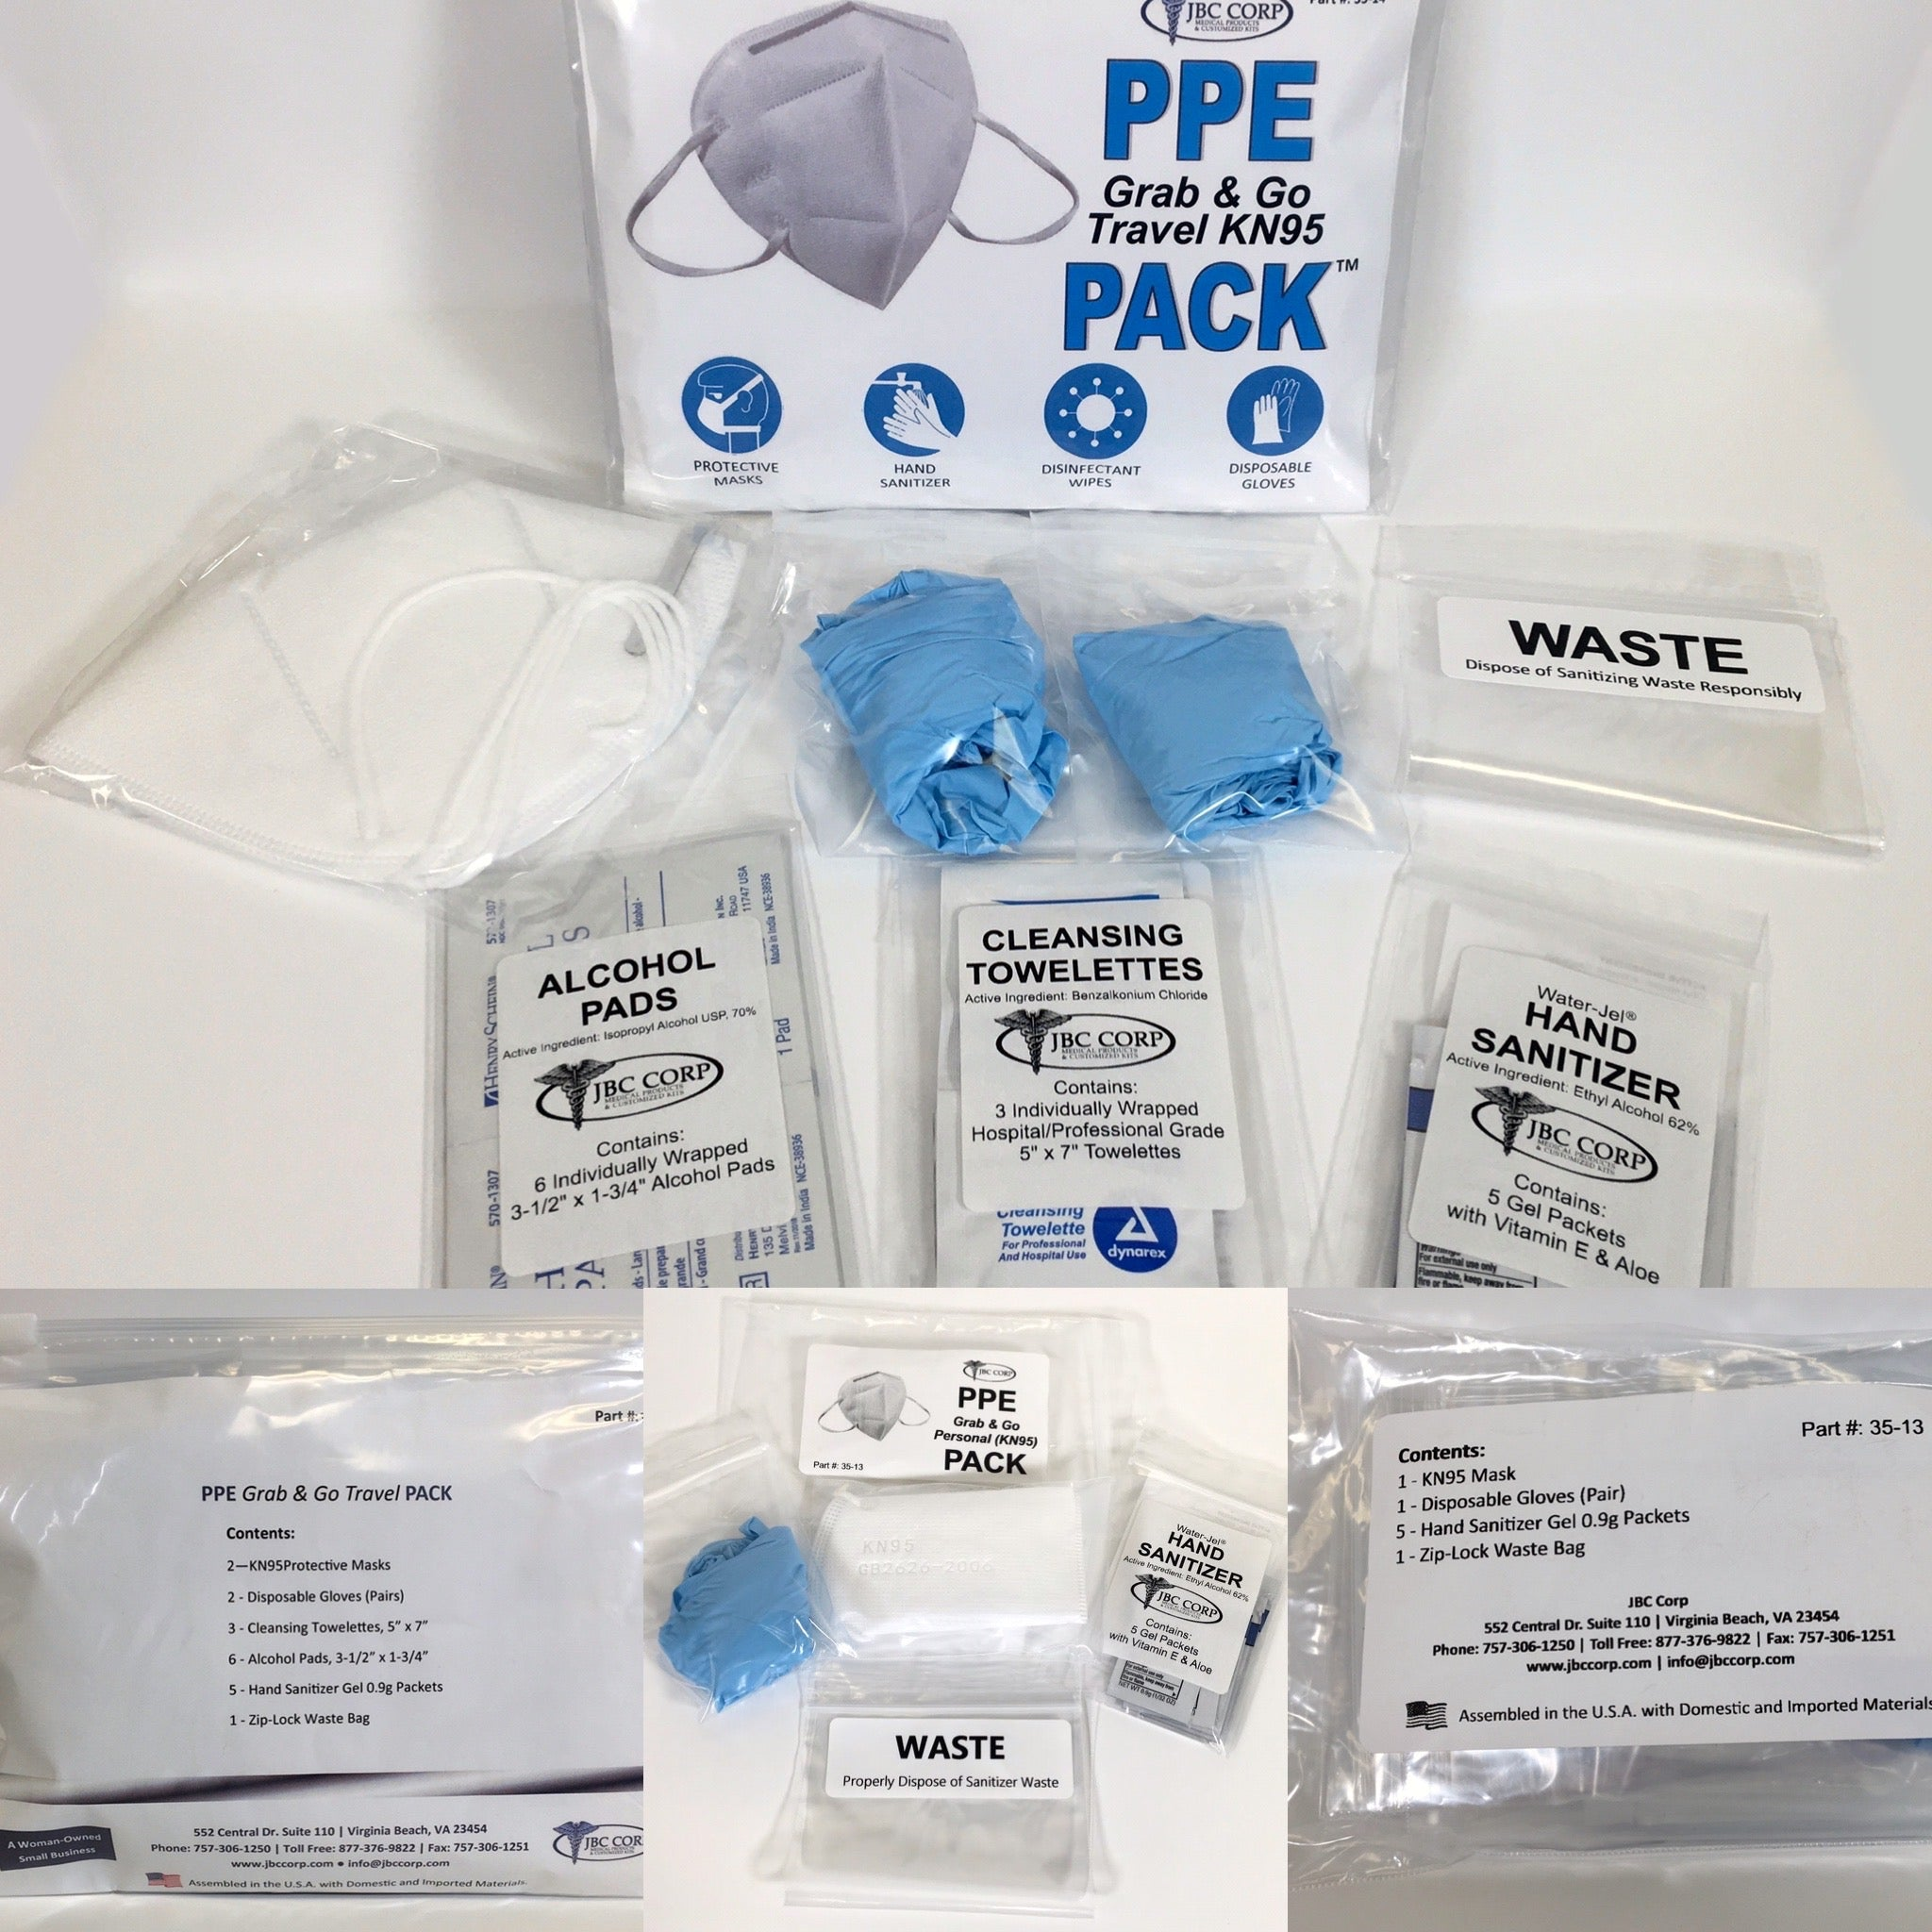 New PPE (Personal Protective Equipment) Kits!